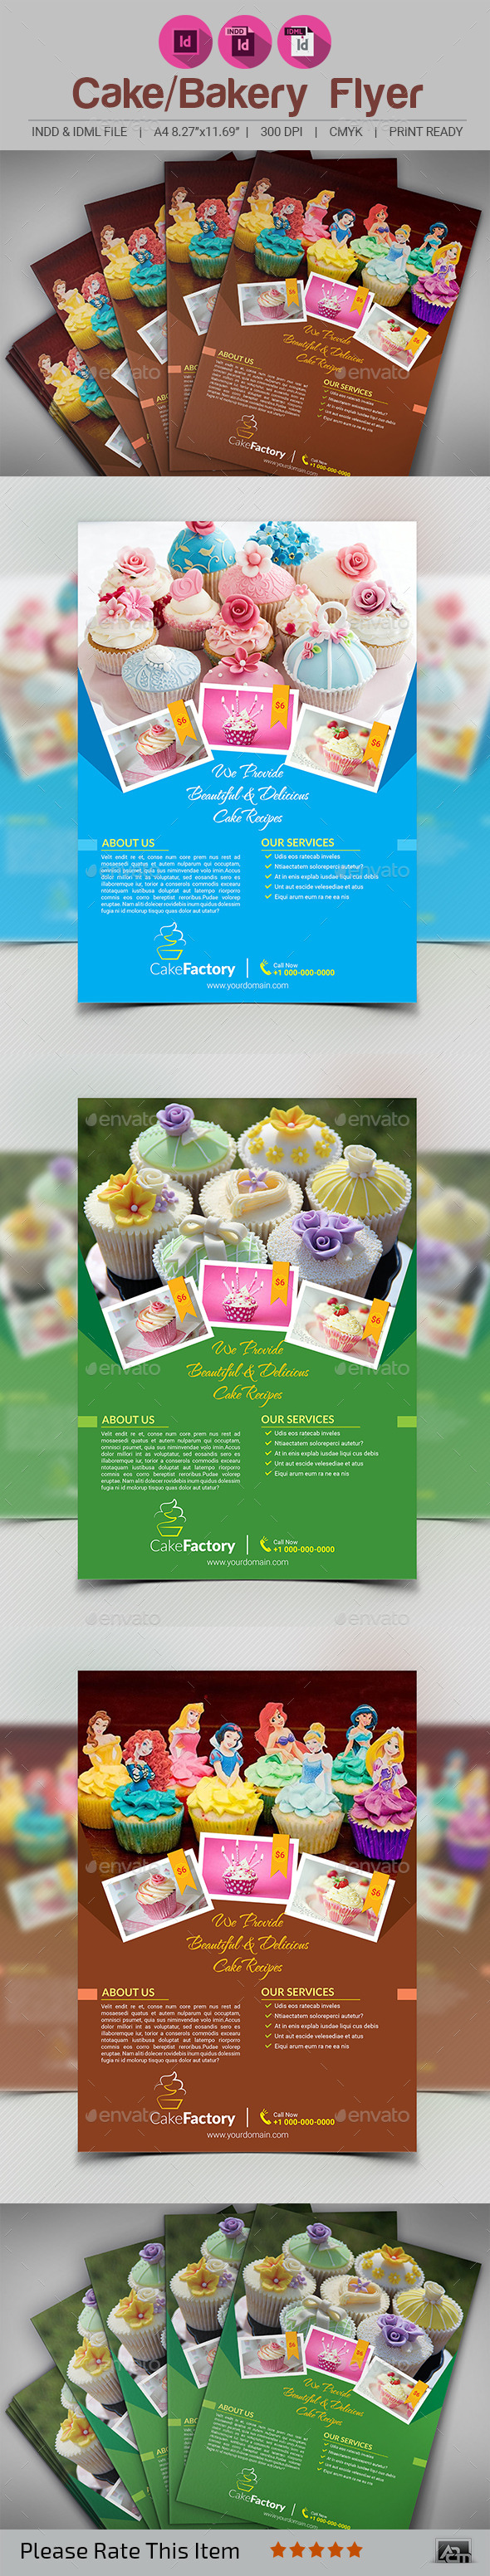 Cake Bakery Flyer or Magazine Ad